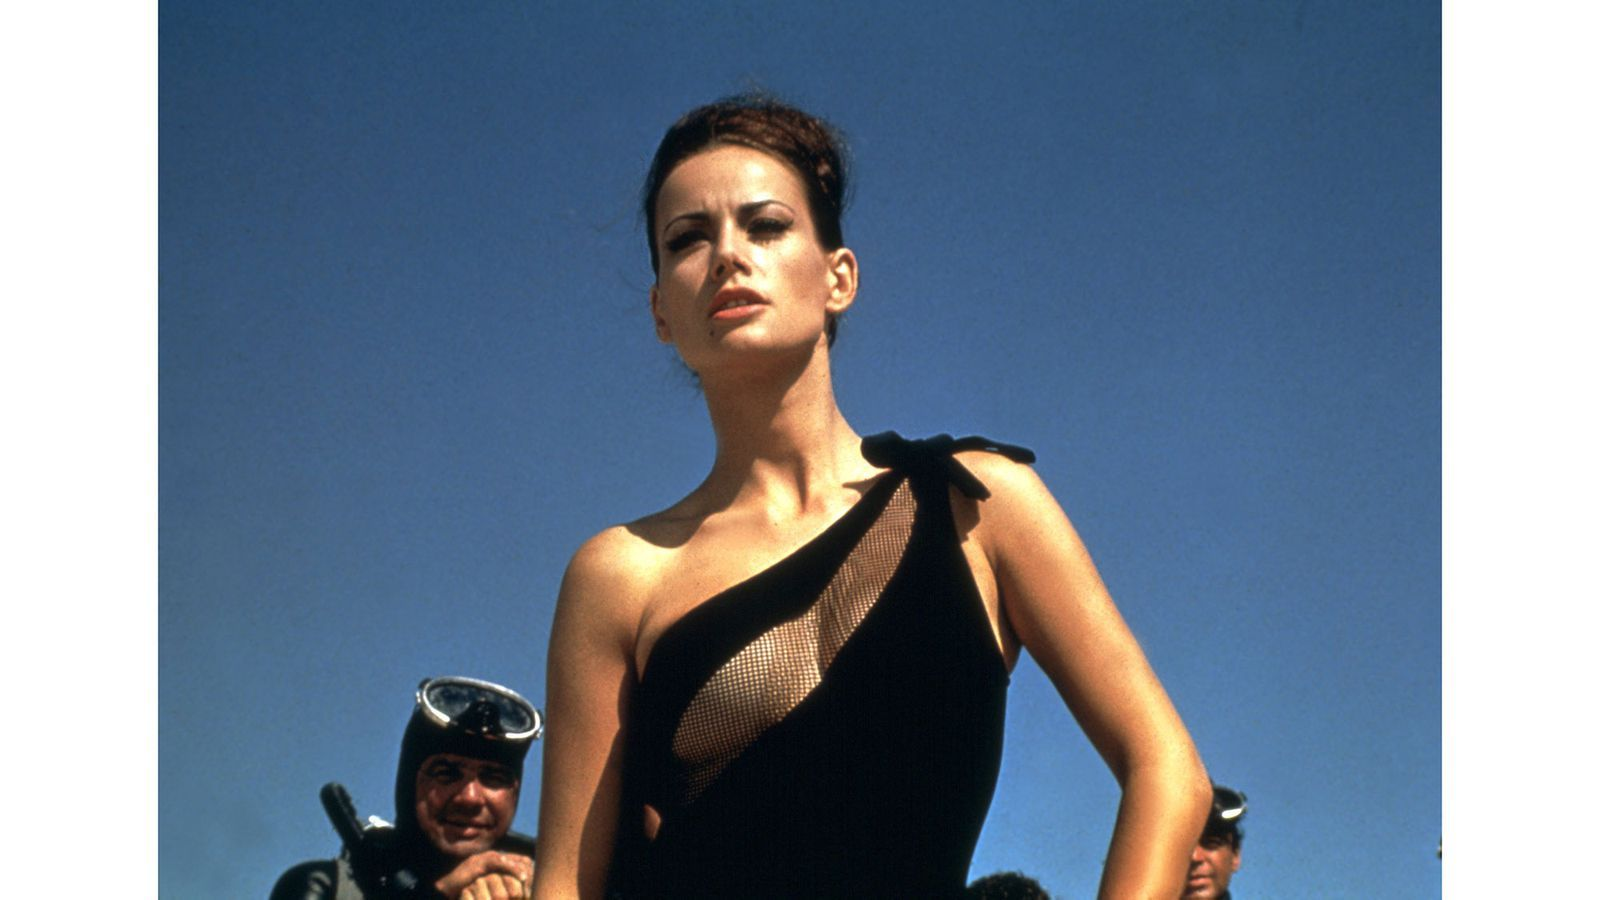 The 26 Best Bond Girls of All Time | Bond girls, James bond and Films